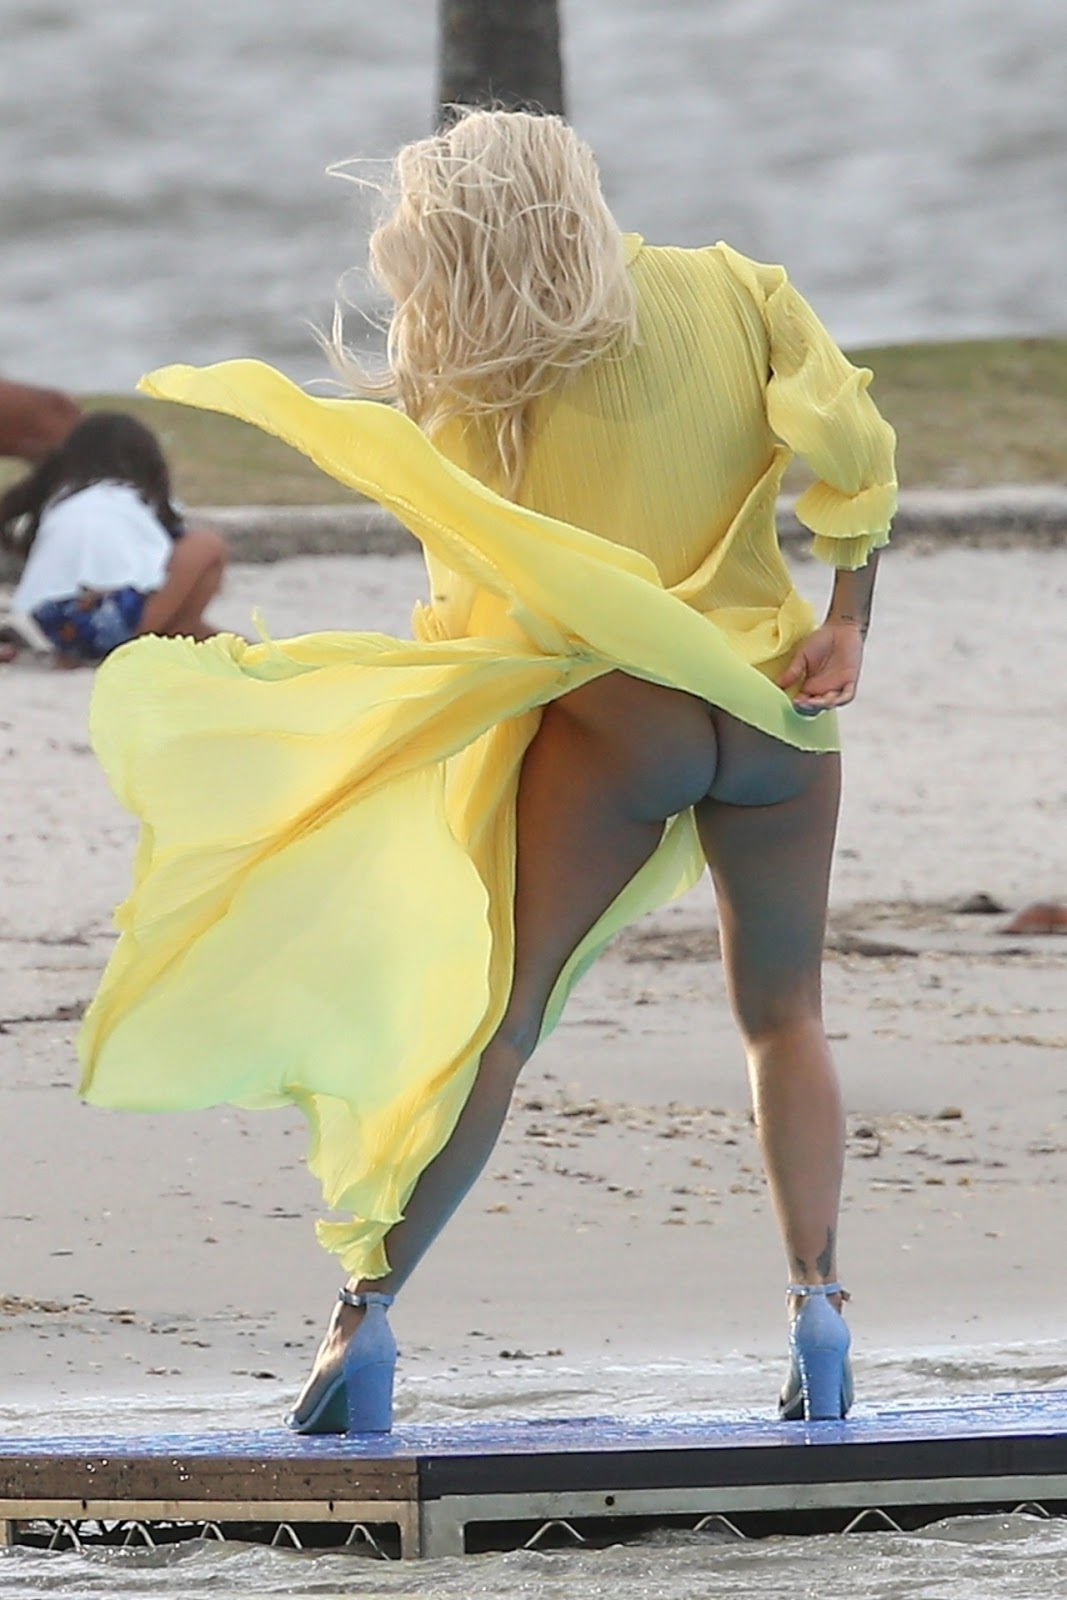 Rita Ora shows more than expected as she faces wardrobe malfunction during photoshoot